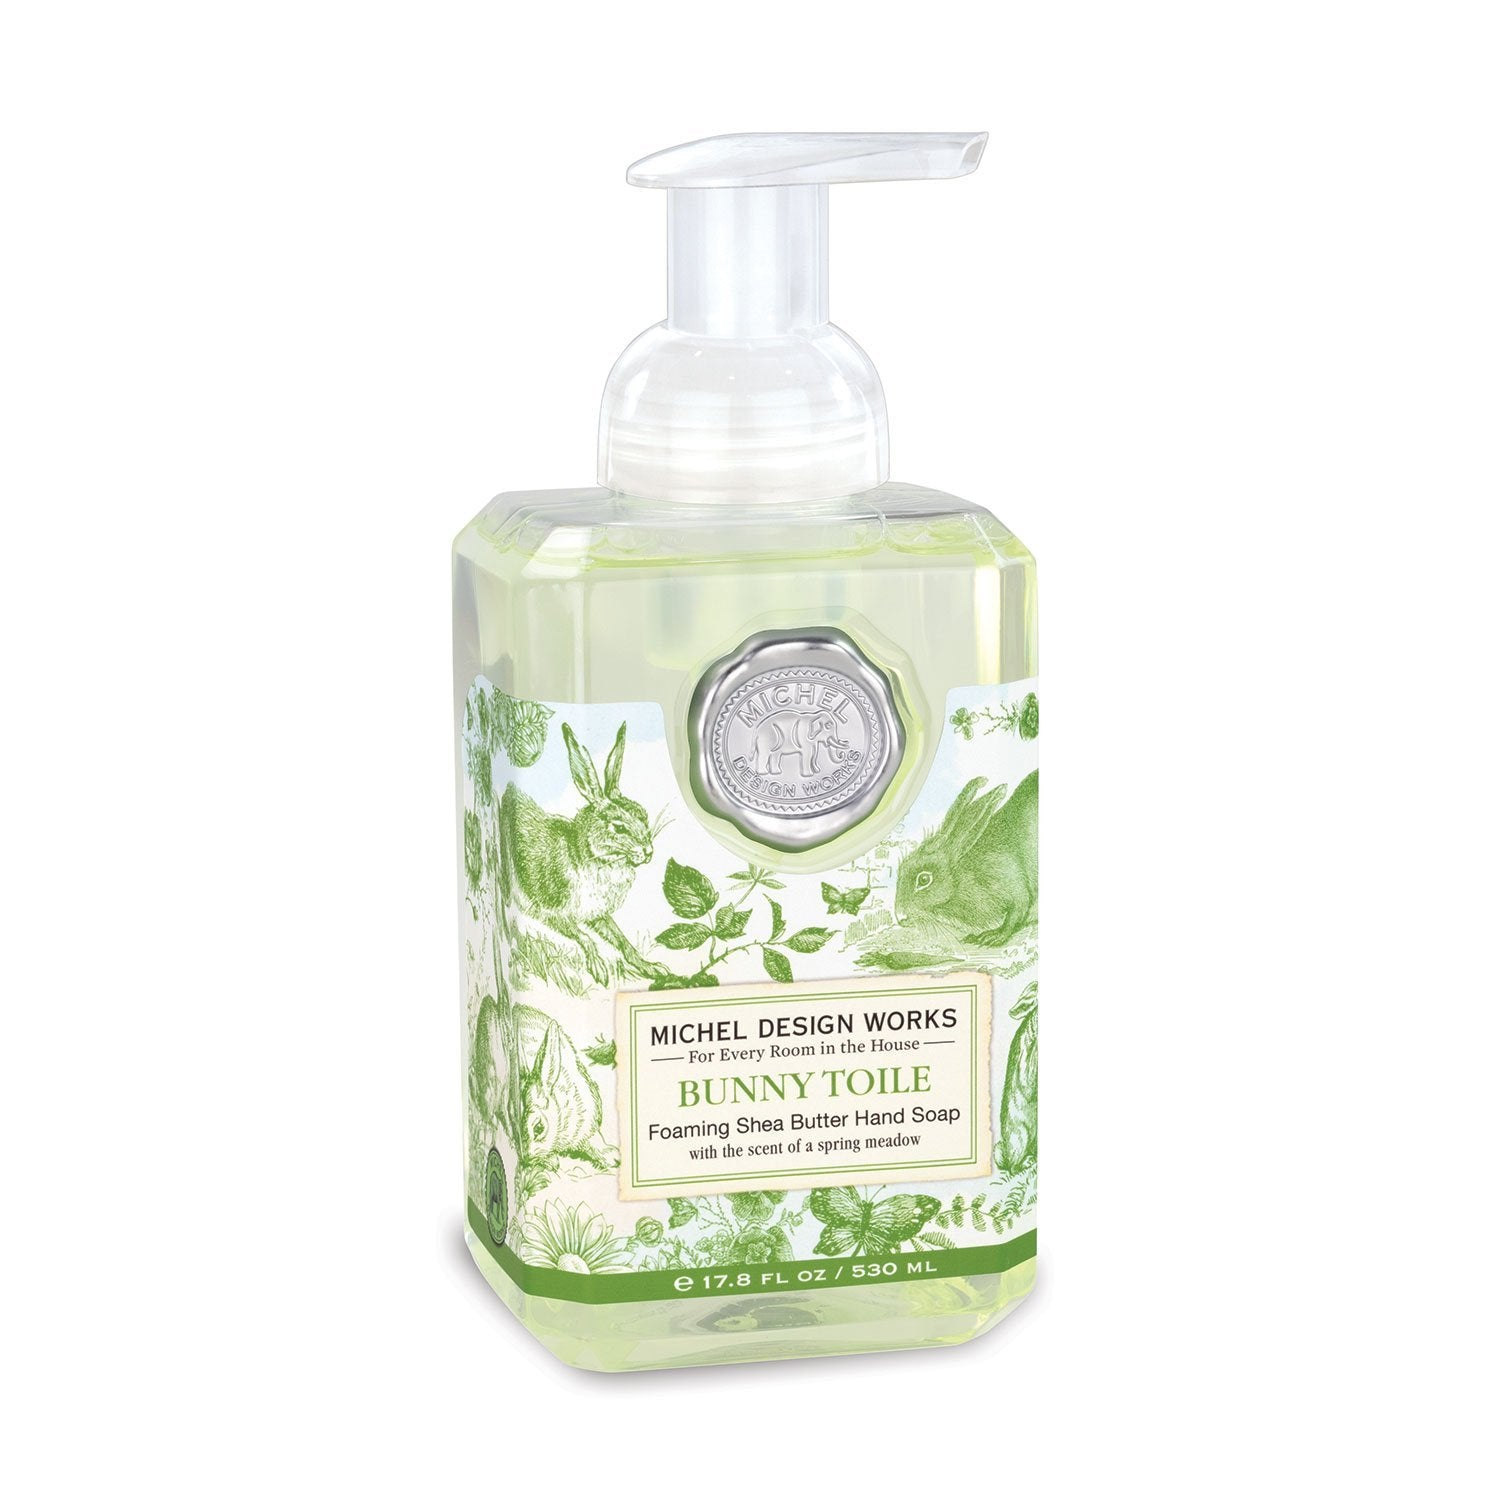 BUNNY TOILE FOAMING SOAP FOA338 - Molly's! A Chic and Unique Boutique